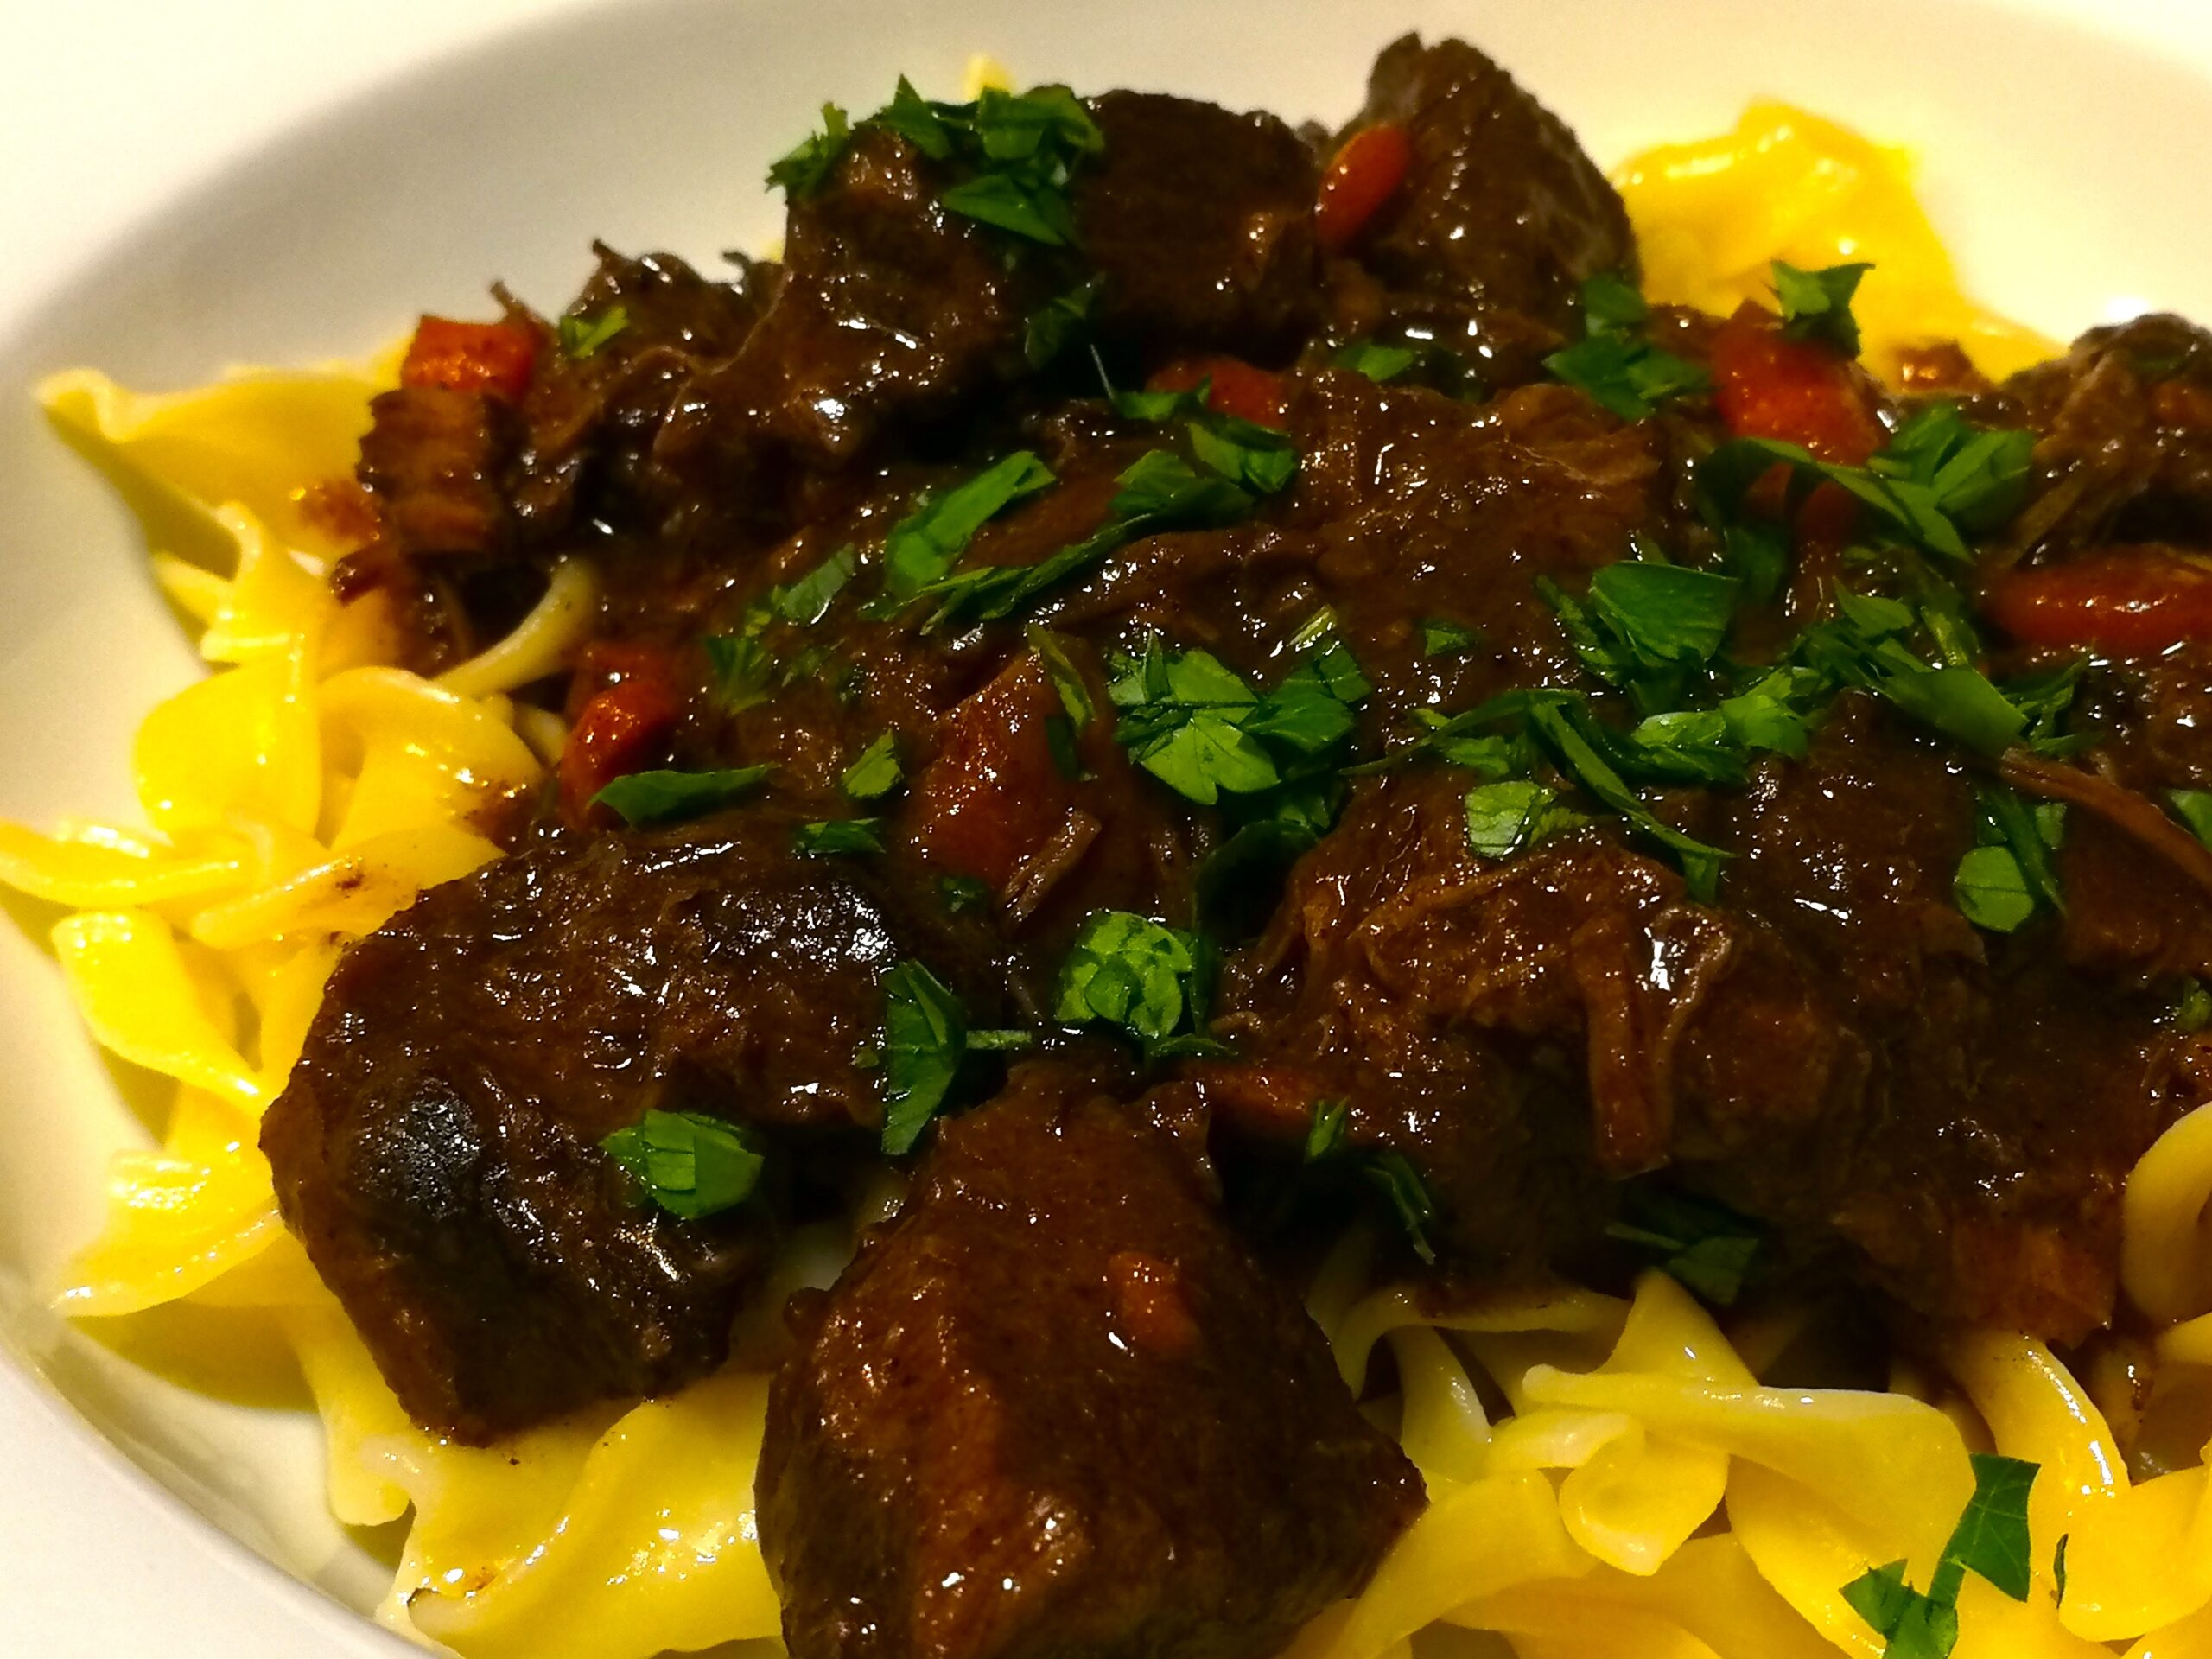 Beef Bourguignon served over buttered egg noodles